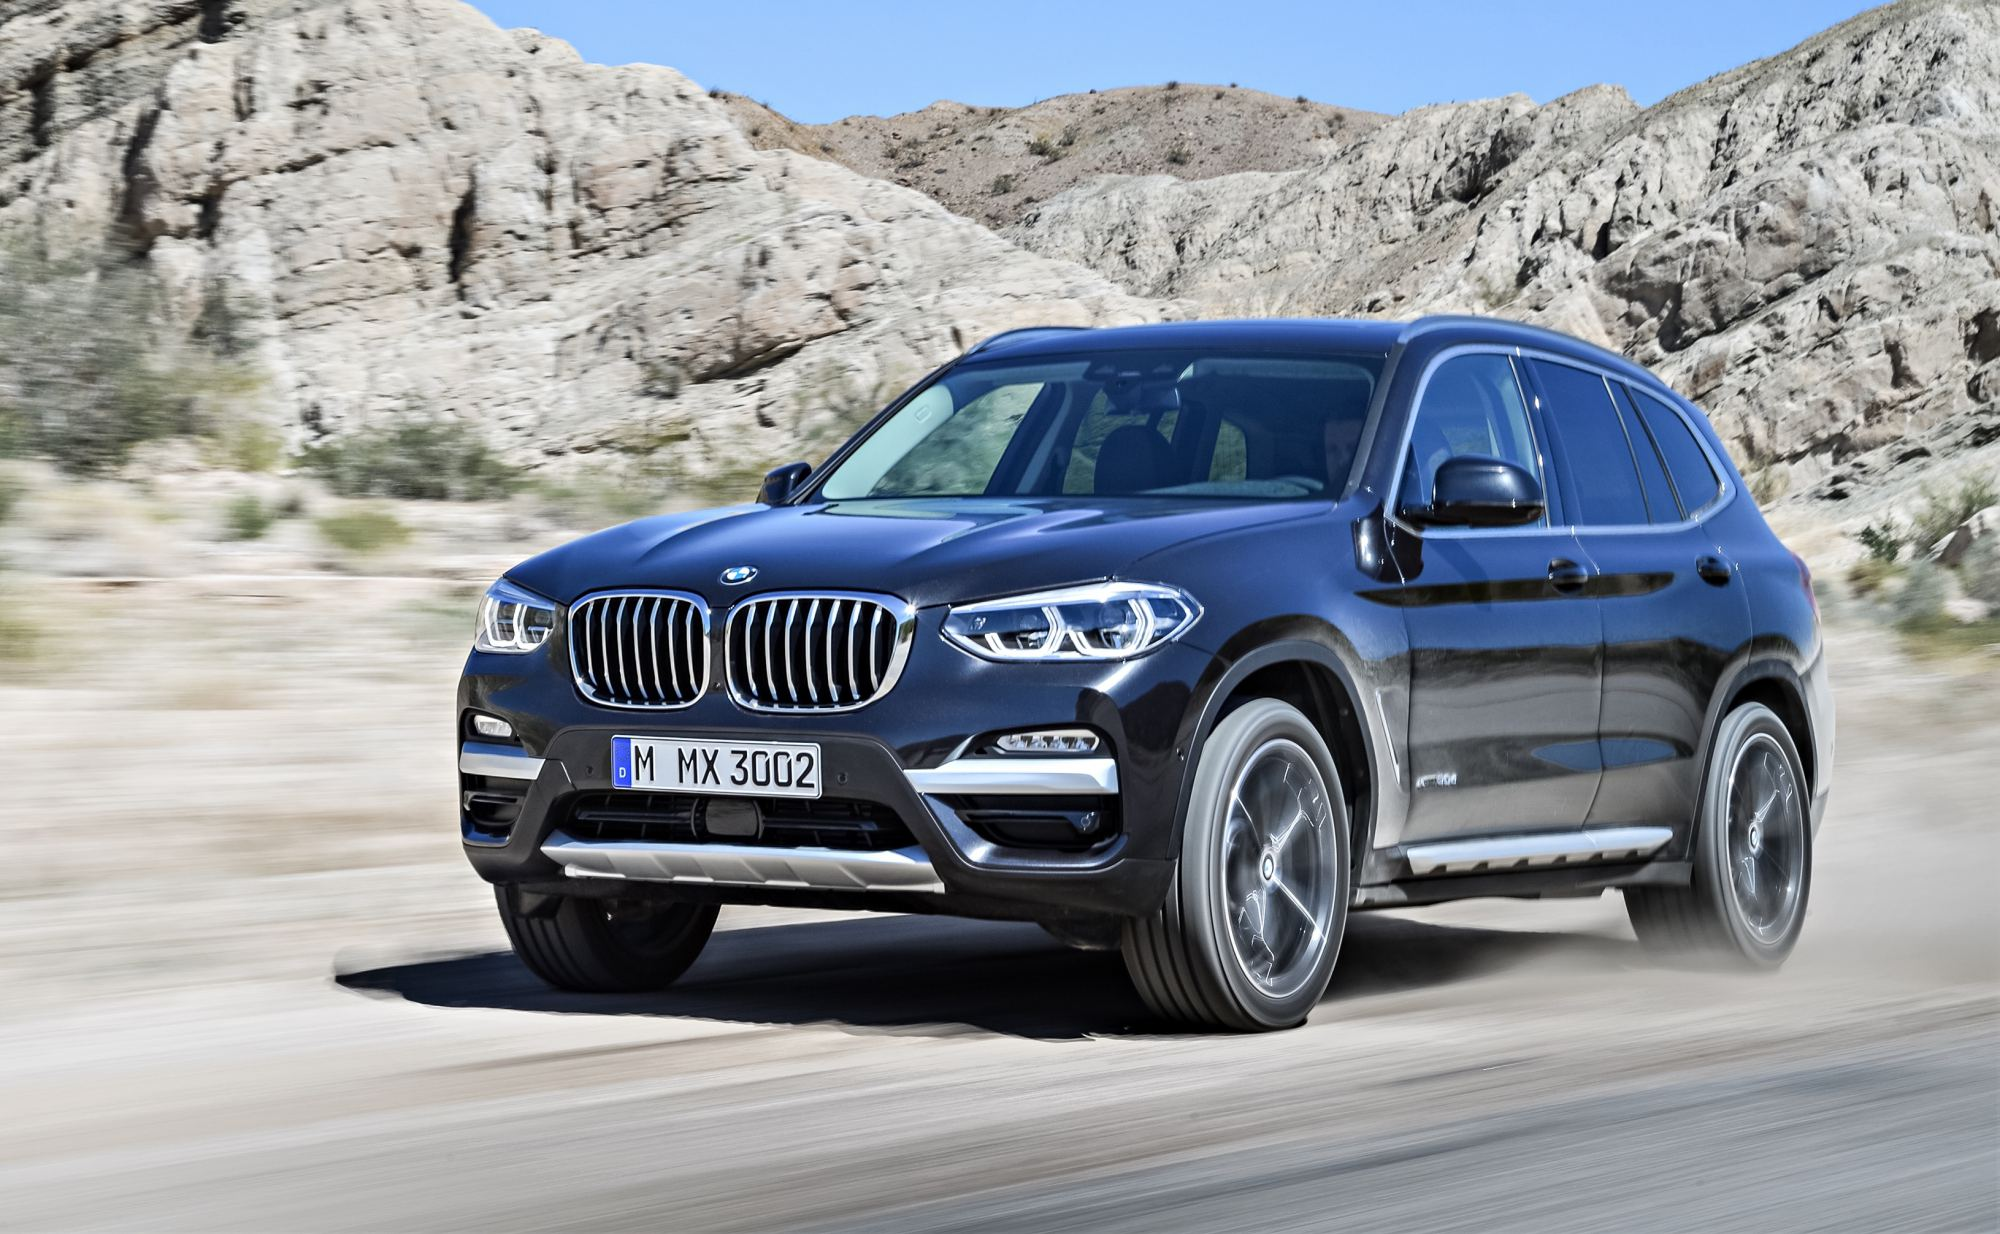 news bmw unveils all new x3 midsize suv. Black Bedroom Furniture Sets. Home Design Ideas